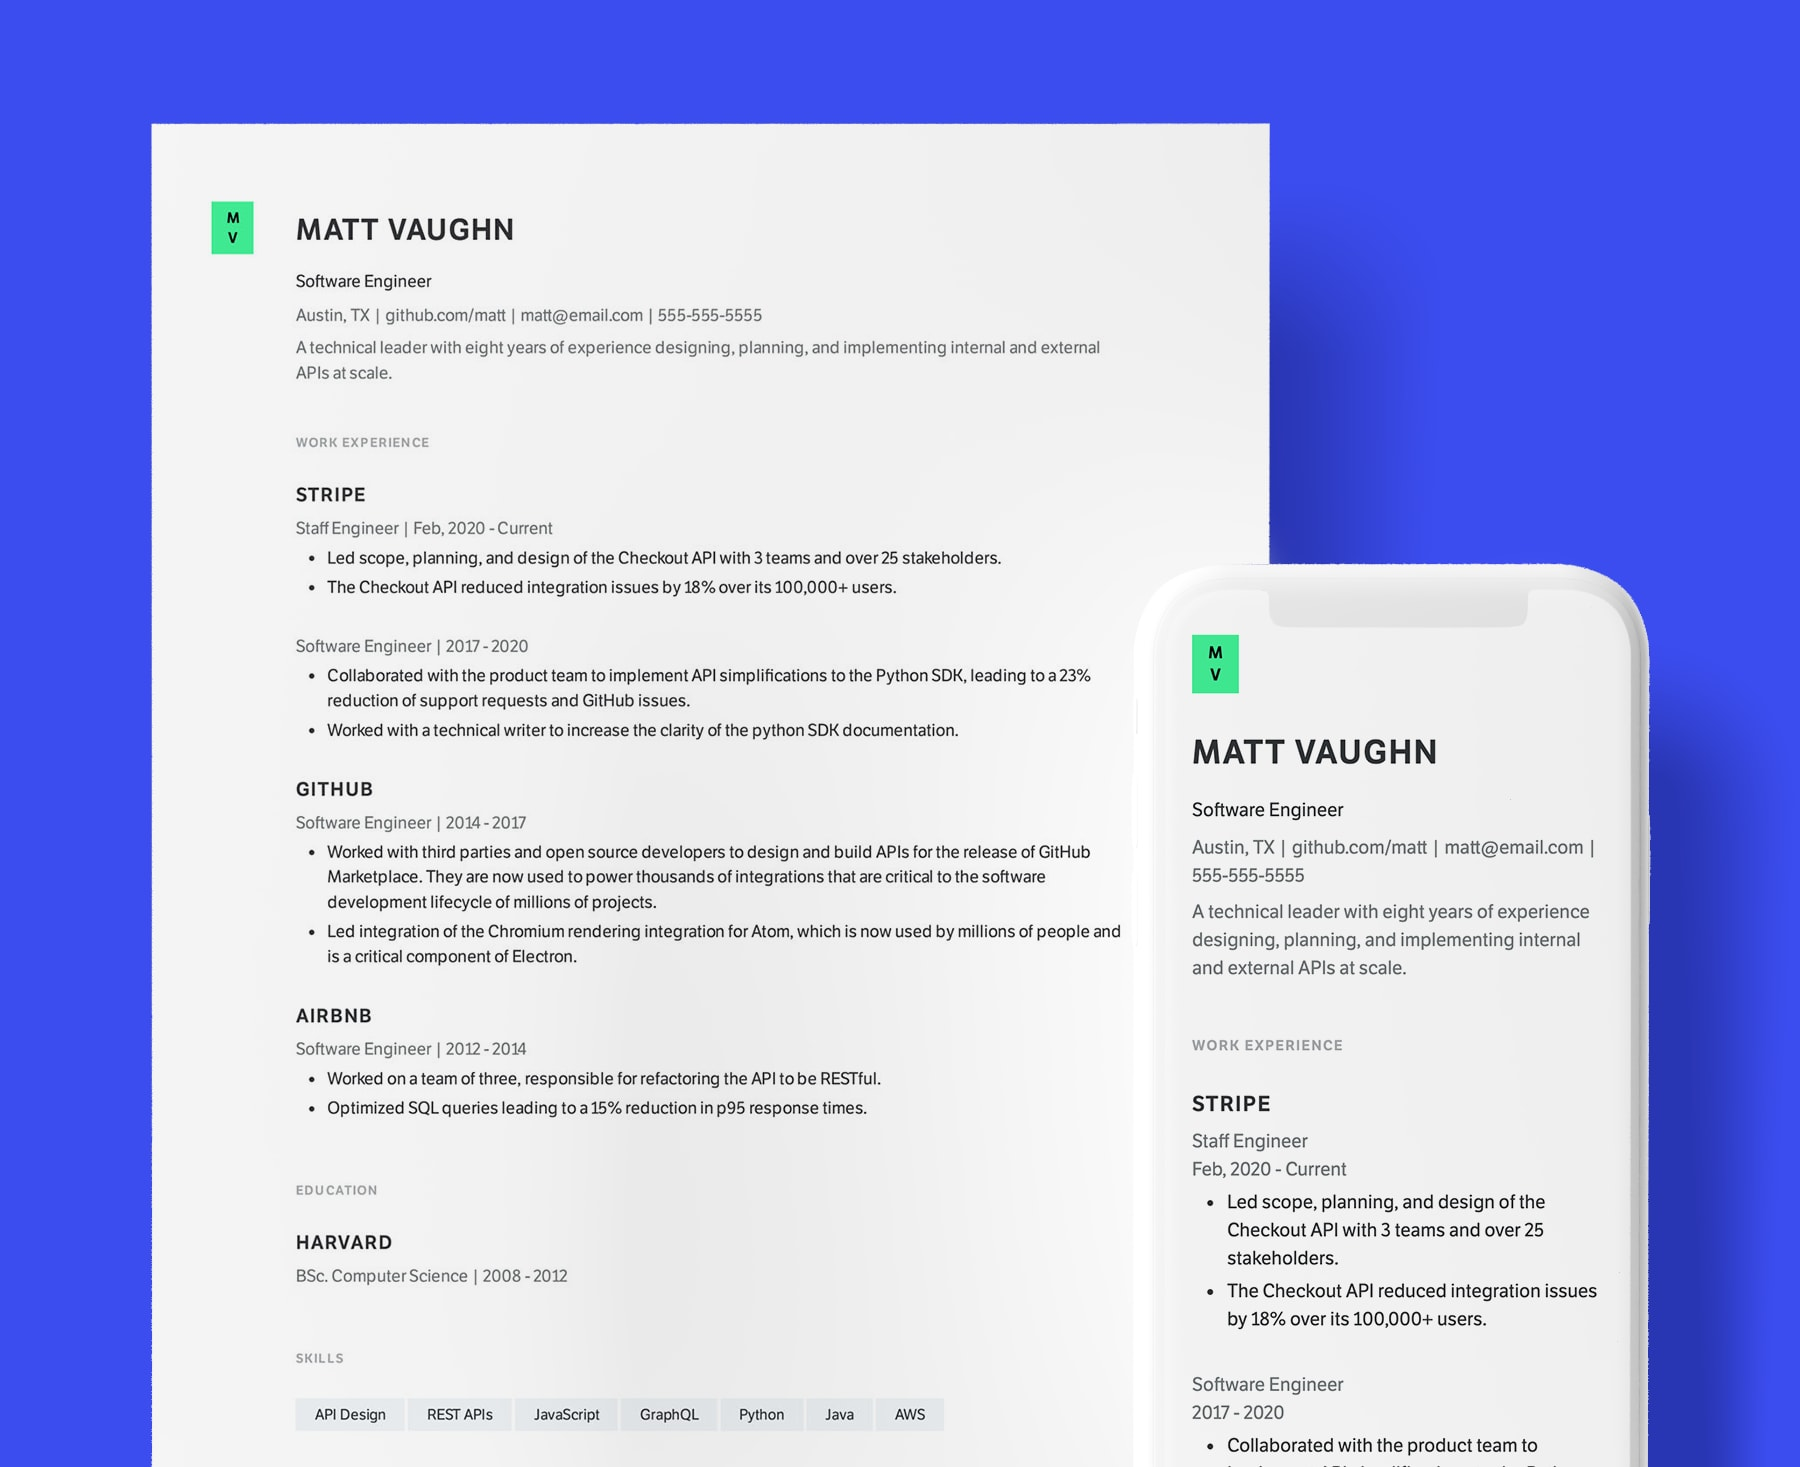 Sidney simple resume template for Software Engineers. Shown in web and PDF format.